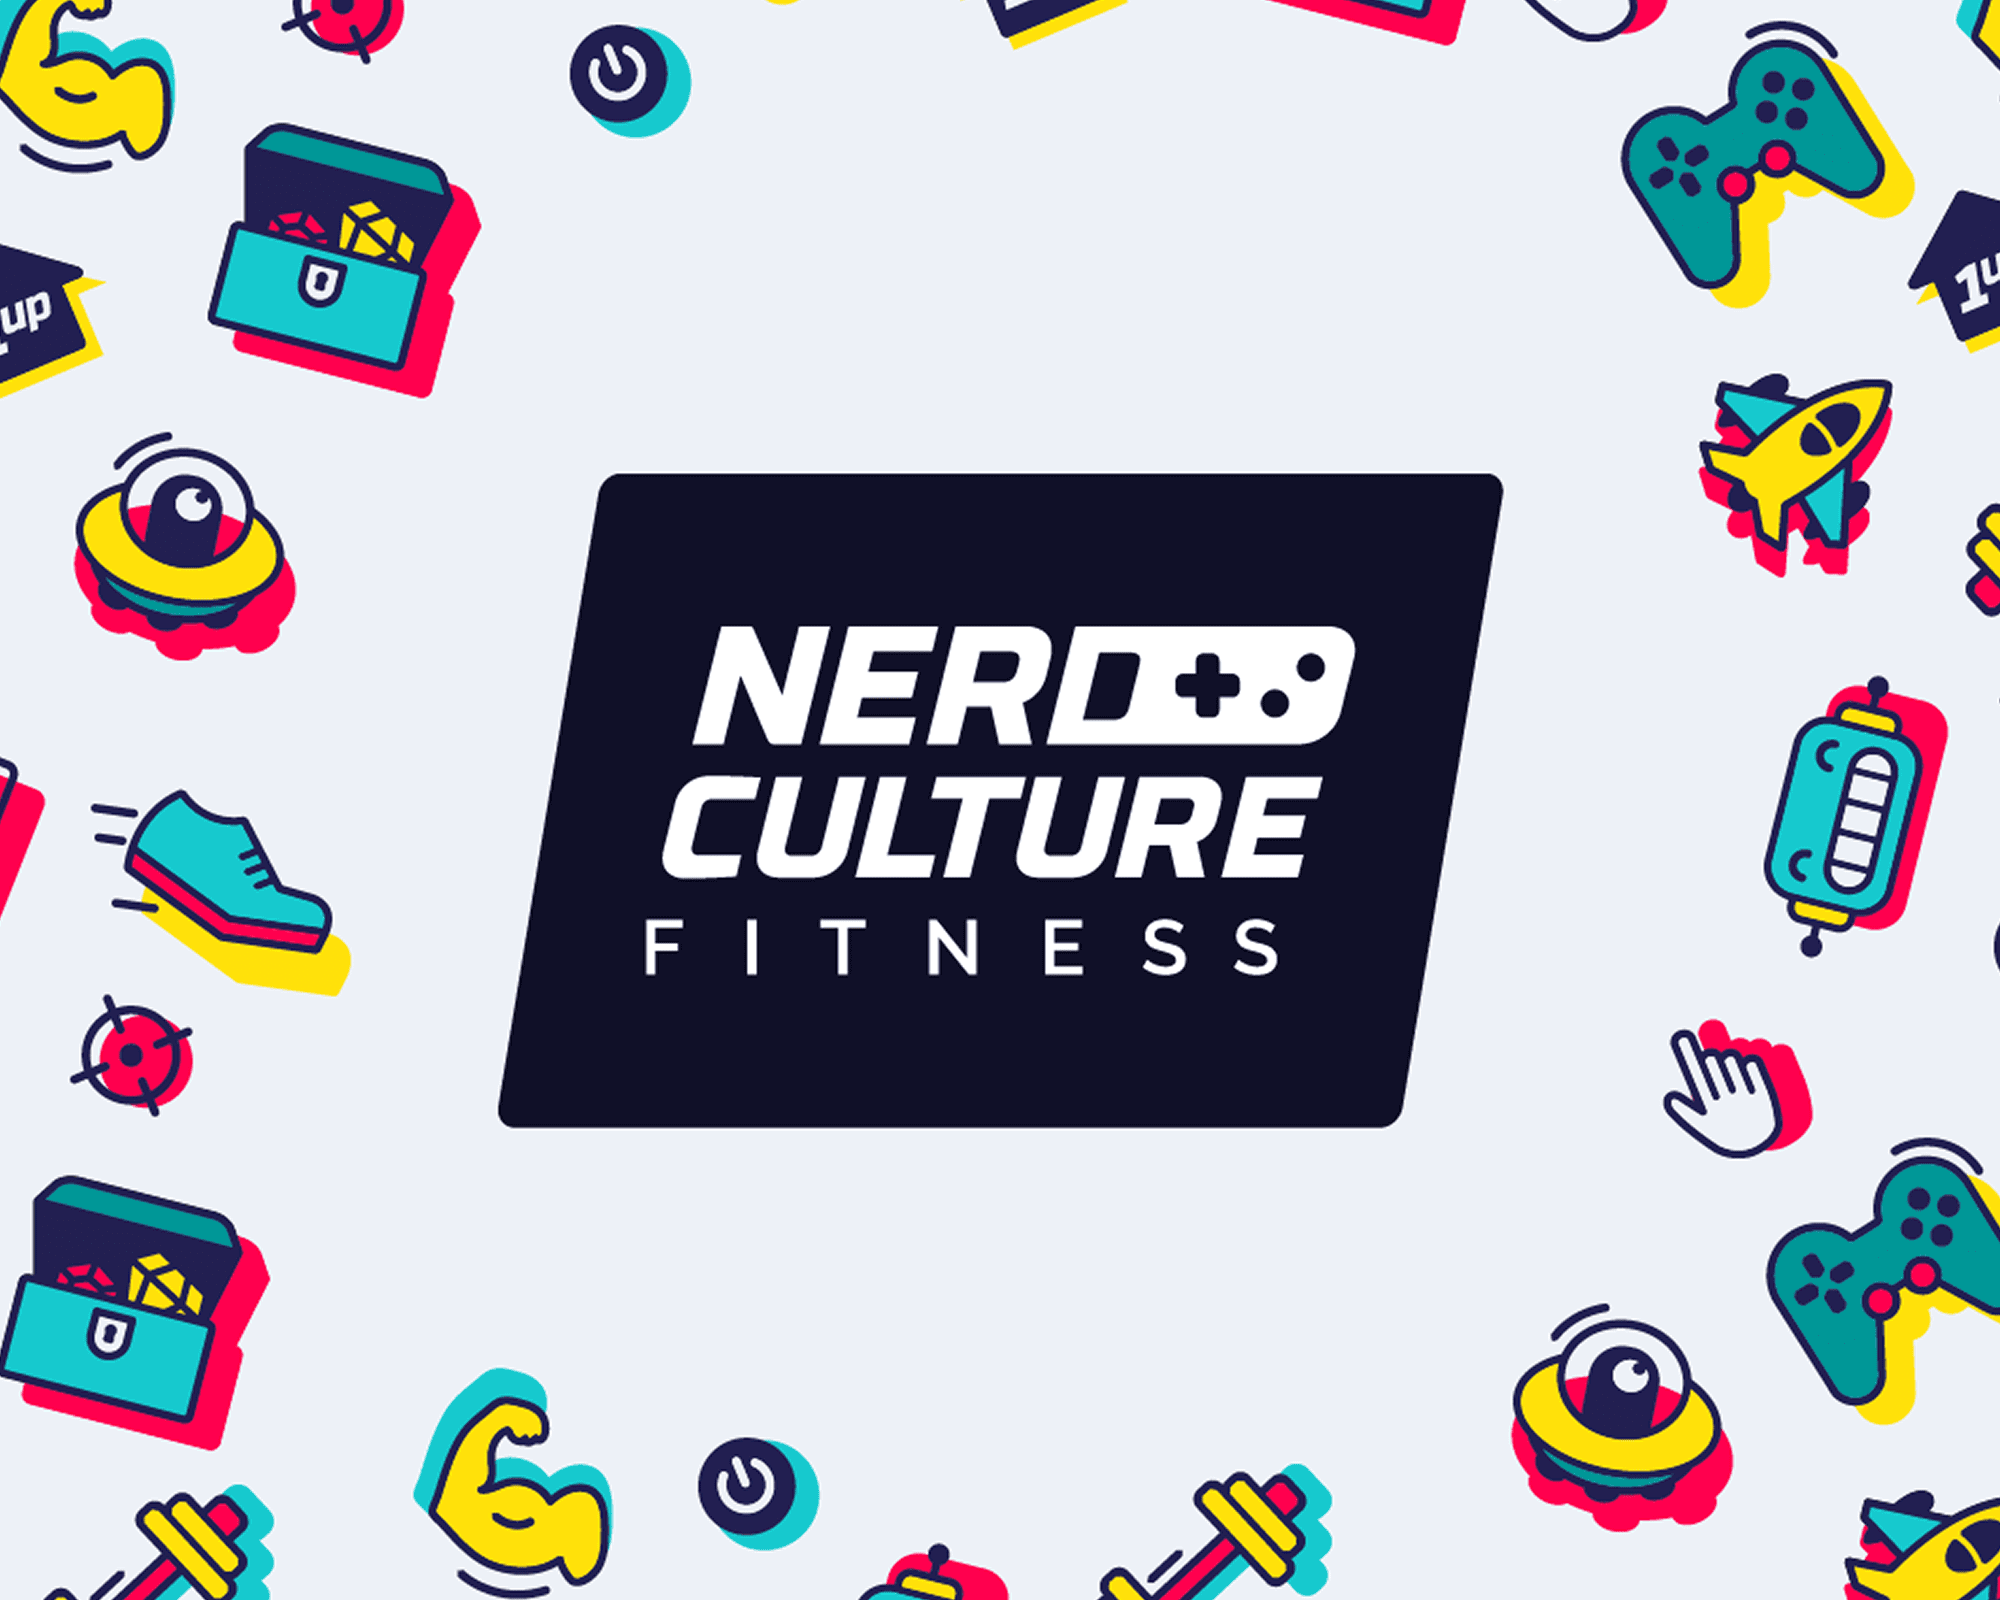 Nerd Culture Fitness branding featured